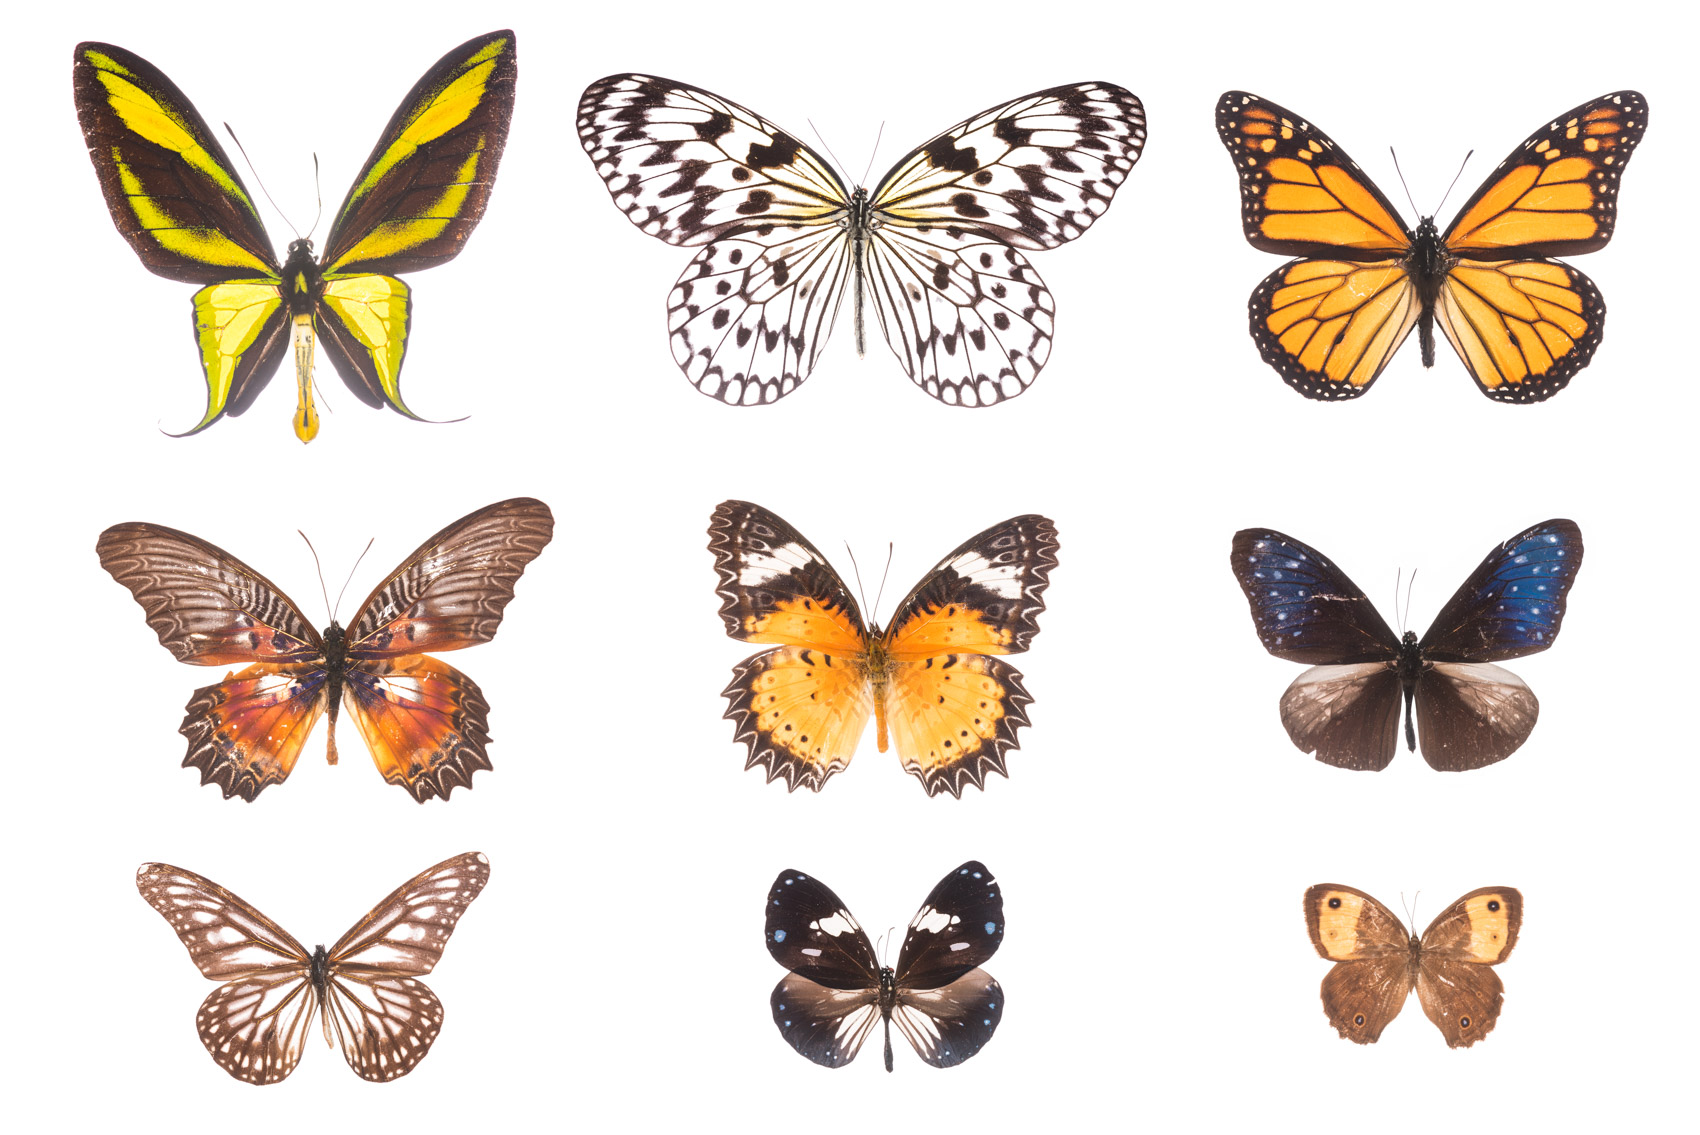 Butterfly Collection, Royal Ontario Museum specimens © David Coulson